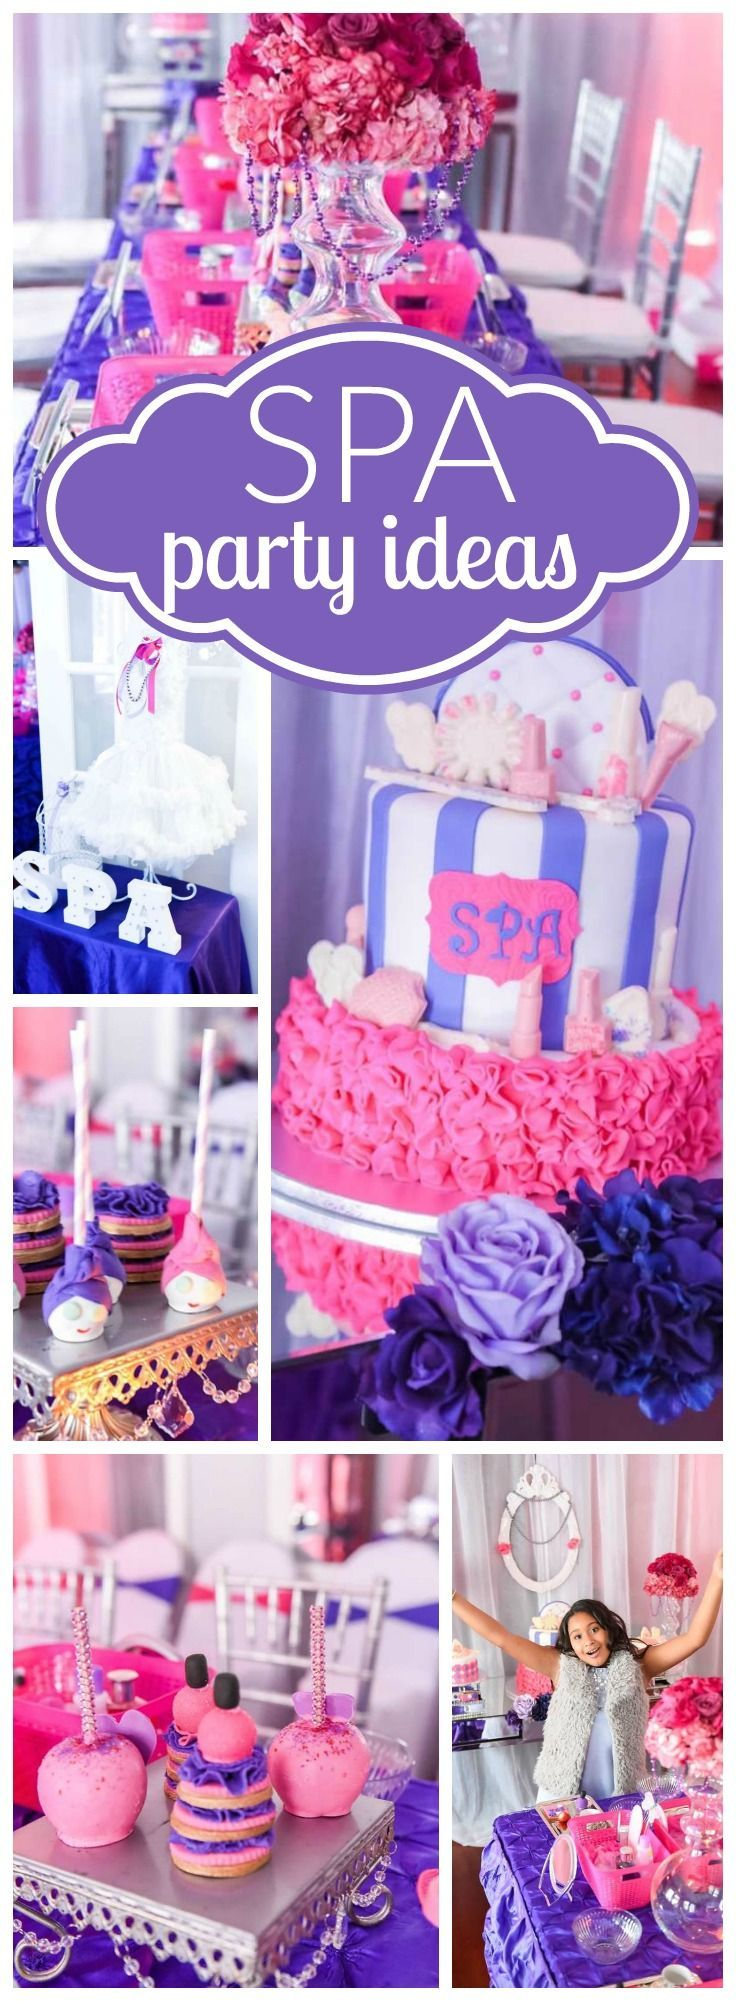 These Girls Had A Day Of Relaxation At This Pink And Purple Spa Party See